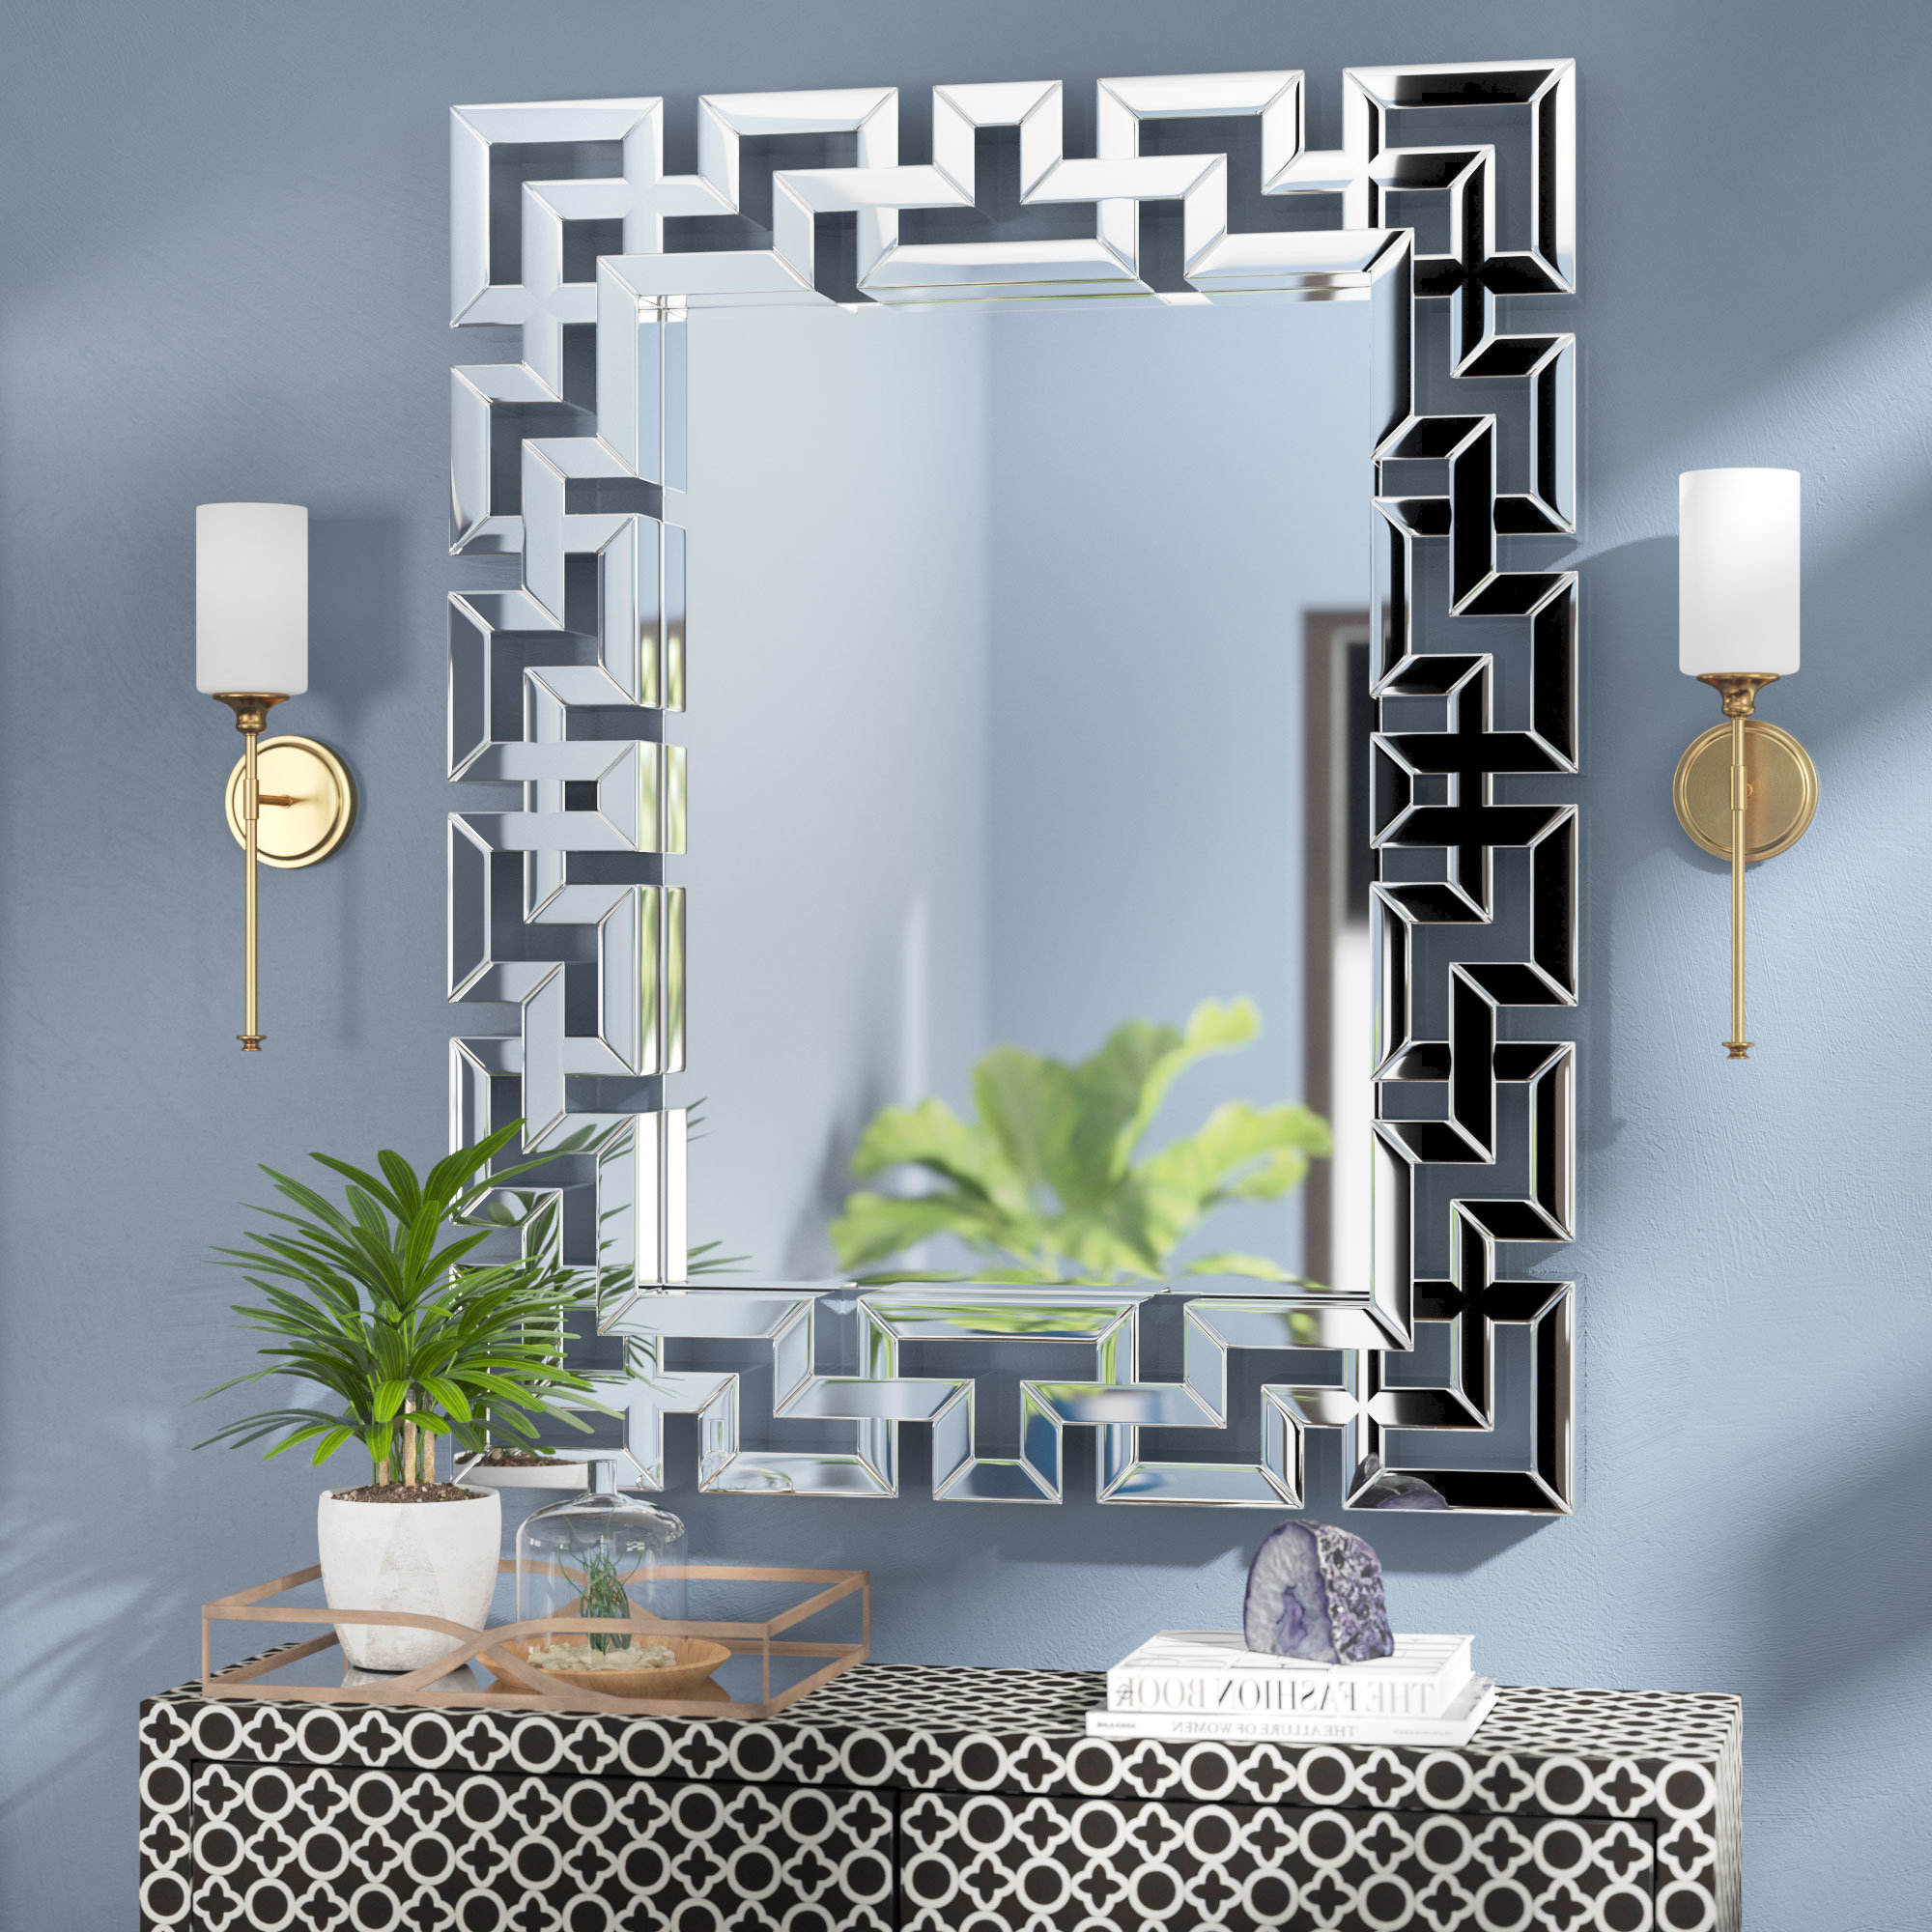 Rectangle Ornate Geometric Wall Mirror Pertaining To Latest Long Rectangular Wall Mirrors (View 20 of 20)